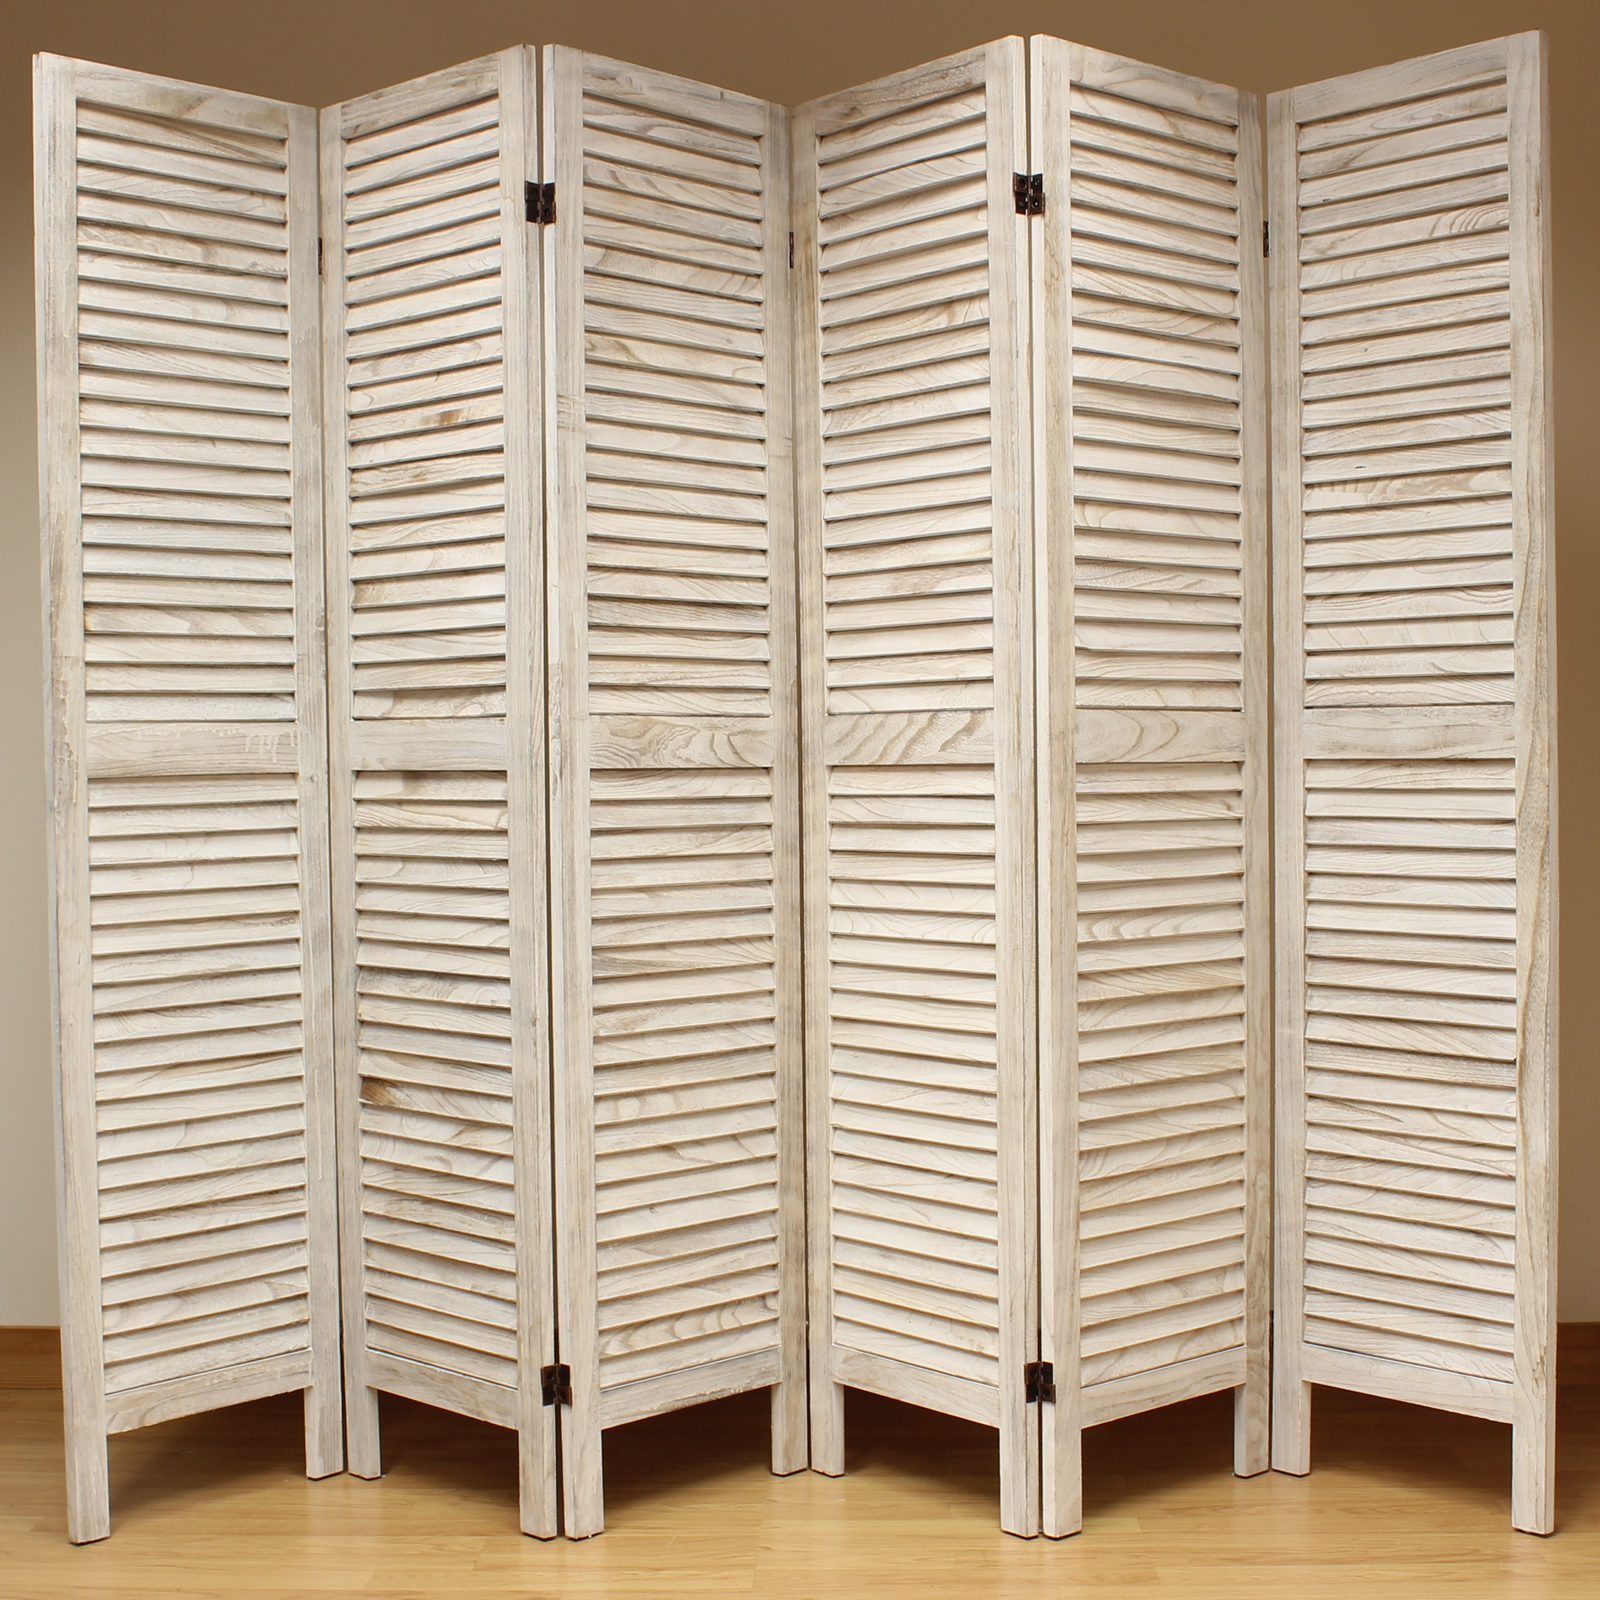 Room Divider Screens Cream 6 Panel Wooden Slat Room Divider Home Privacy Screen